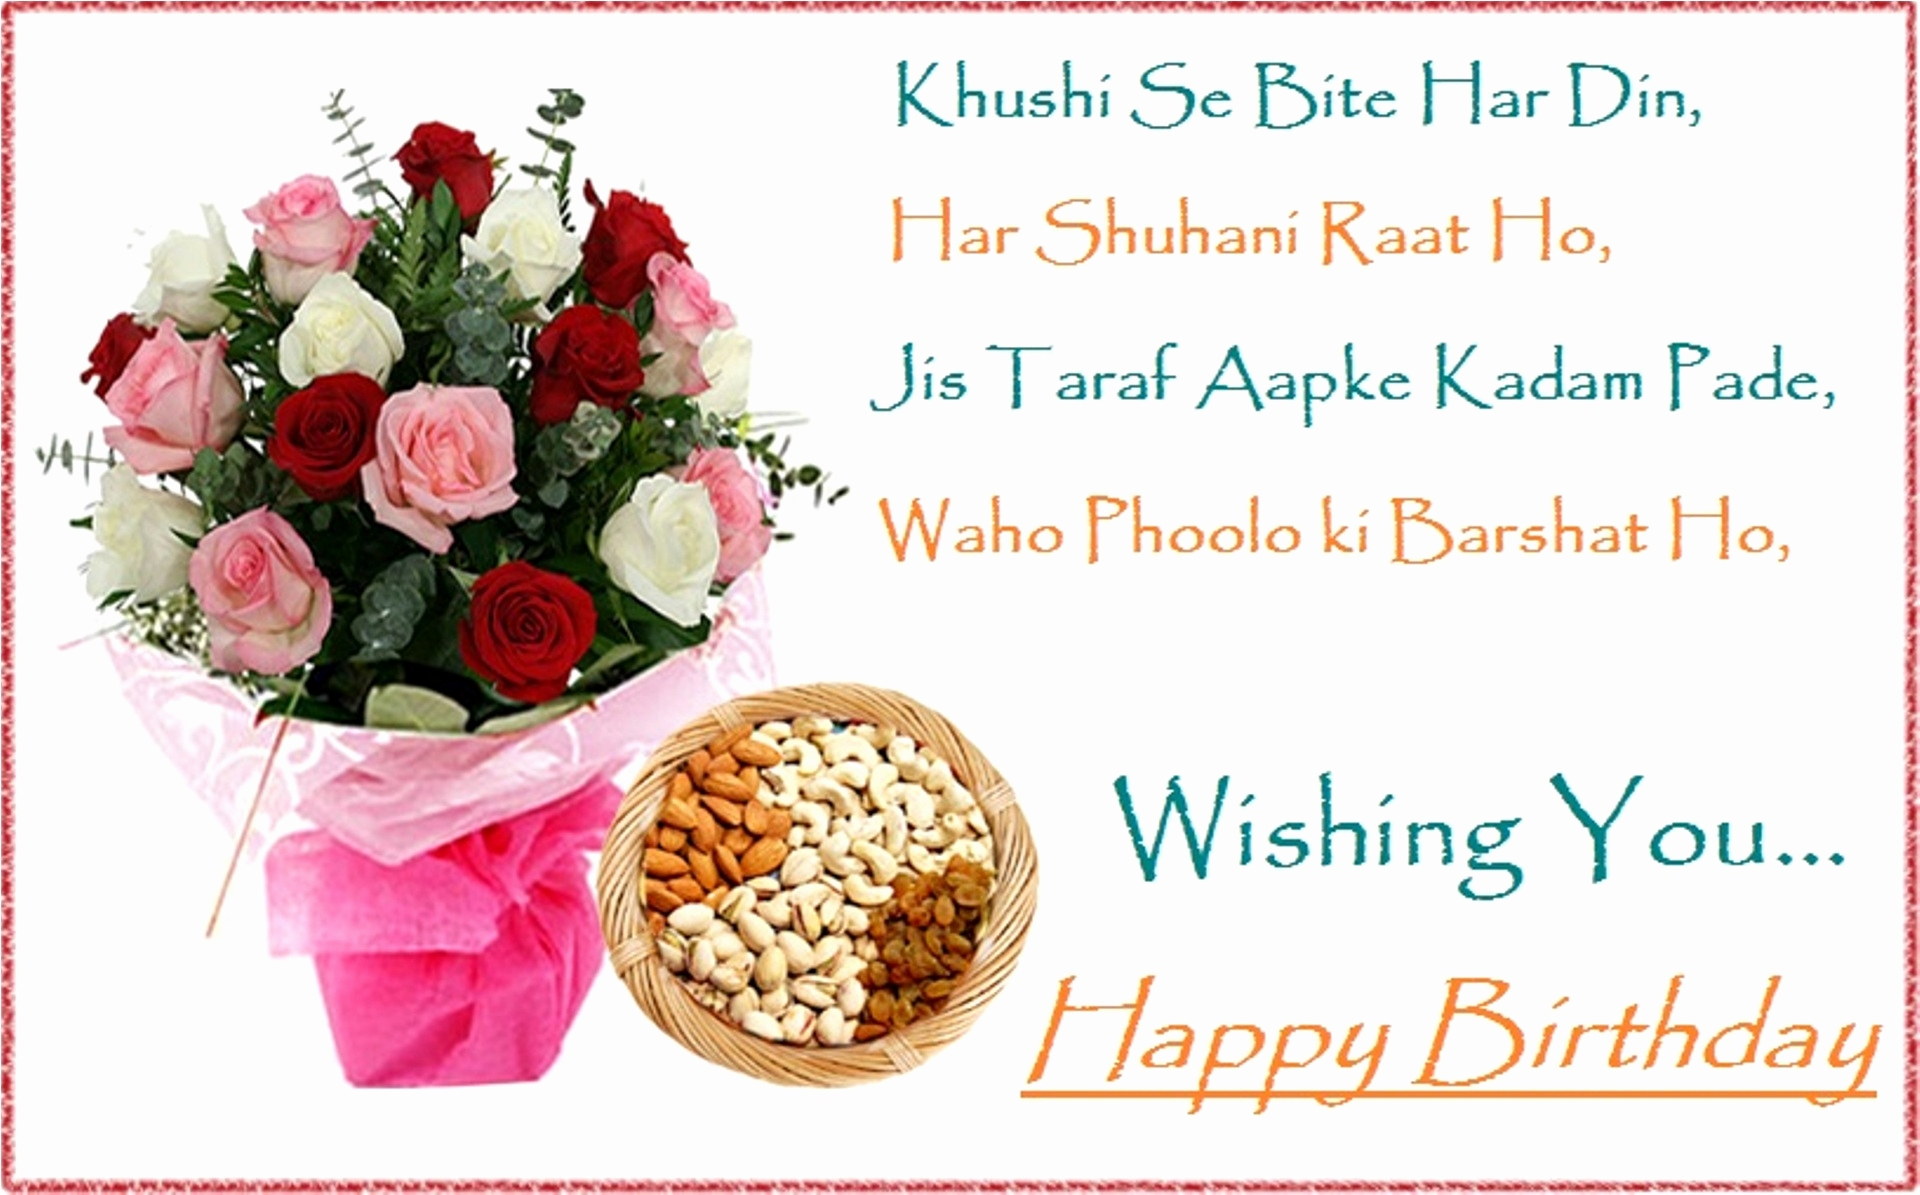 happy birthday card image download ; download-happy-birthday-cards-for-friends-luxury-5000-happy-birthday-wishes-birthday-birthday-messages-of-download-happy-birthday-cards-for-friends